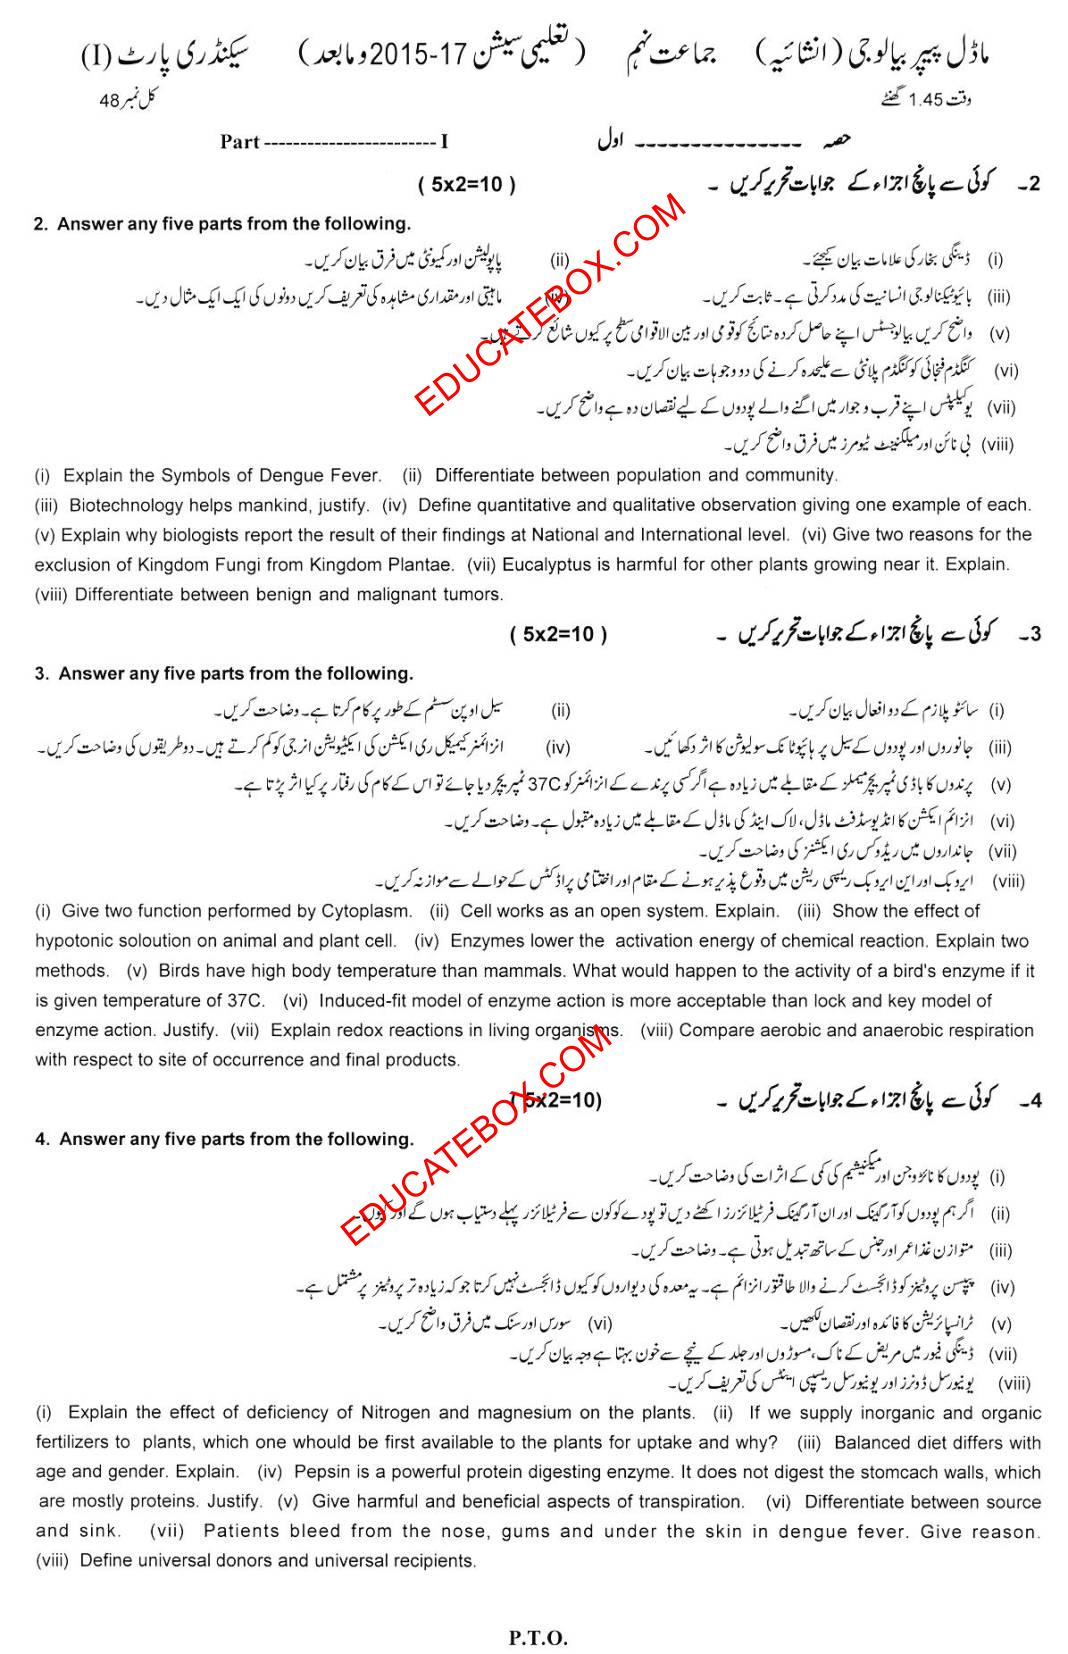 Model Paper of 9th Class Computer Science 2015-17 - Subjective Type Paper - Page 1